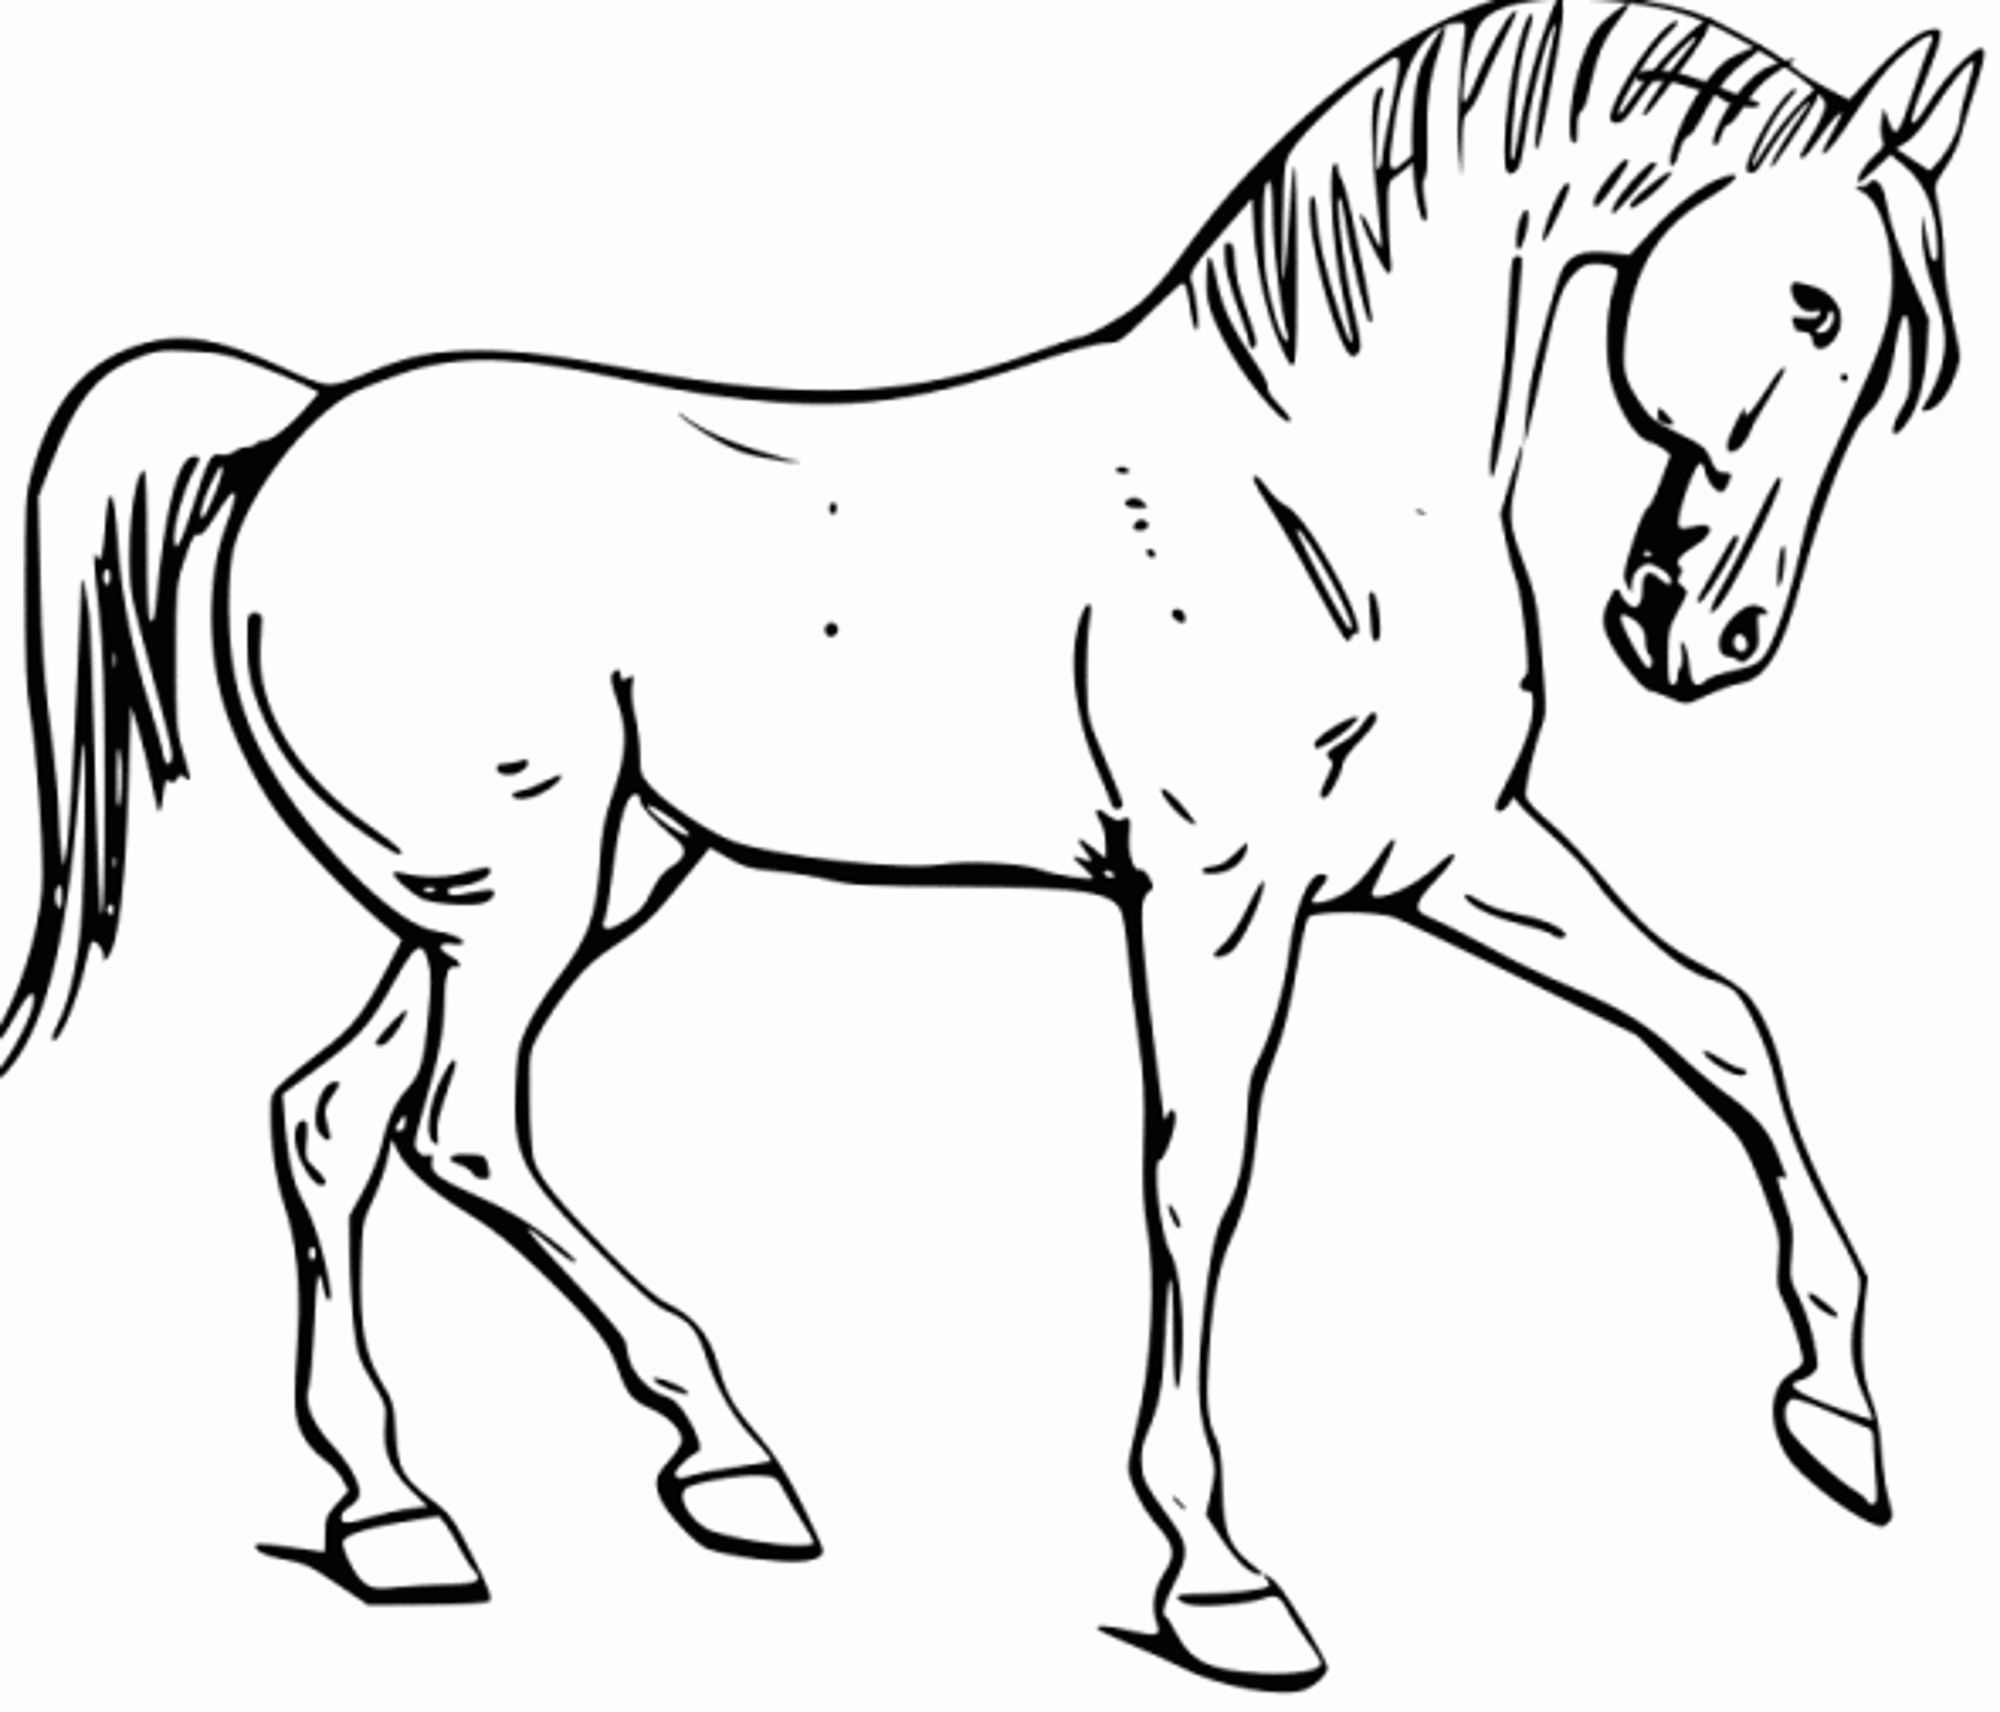 2000x1712 Printable Horse Coloring Pages Fun For Your Kids Ribsvigyapan